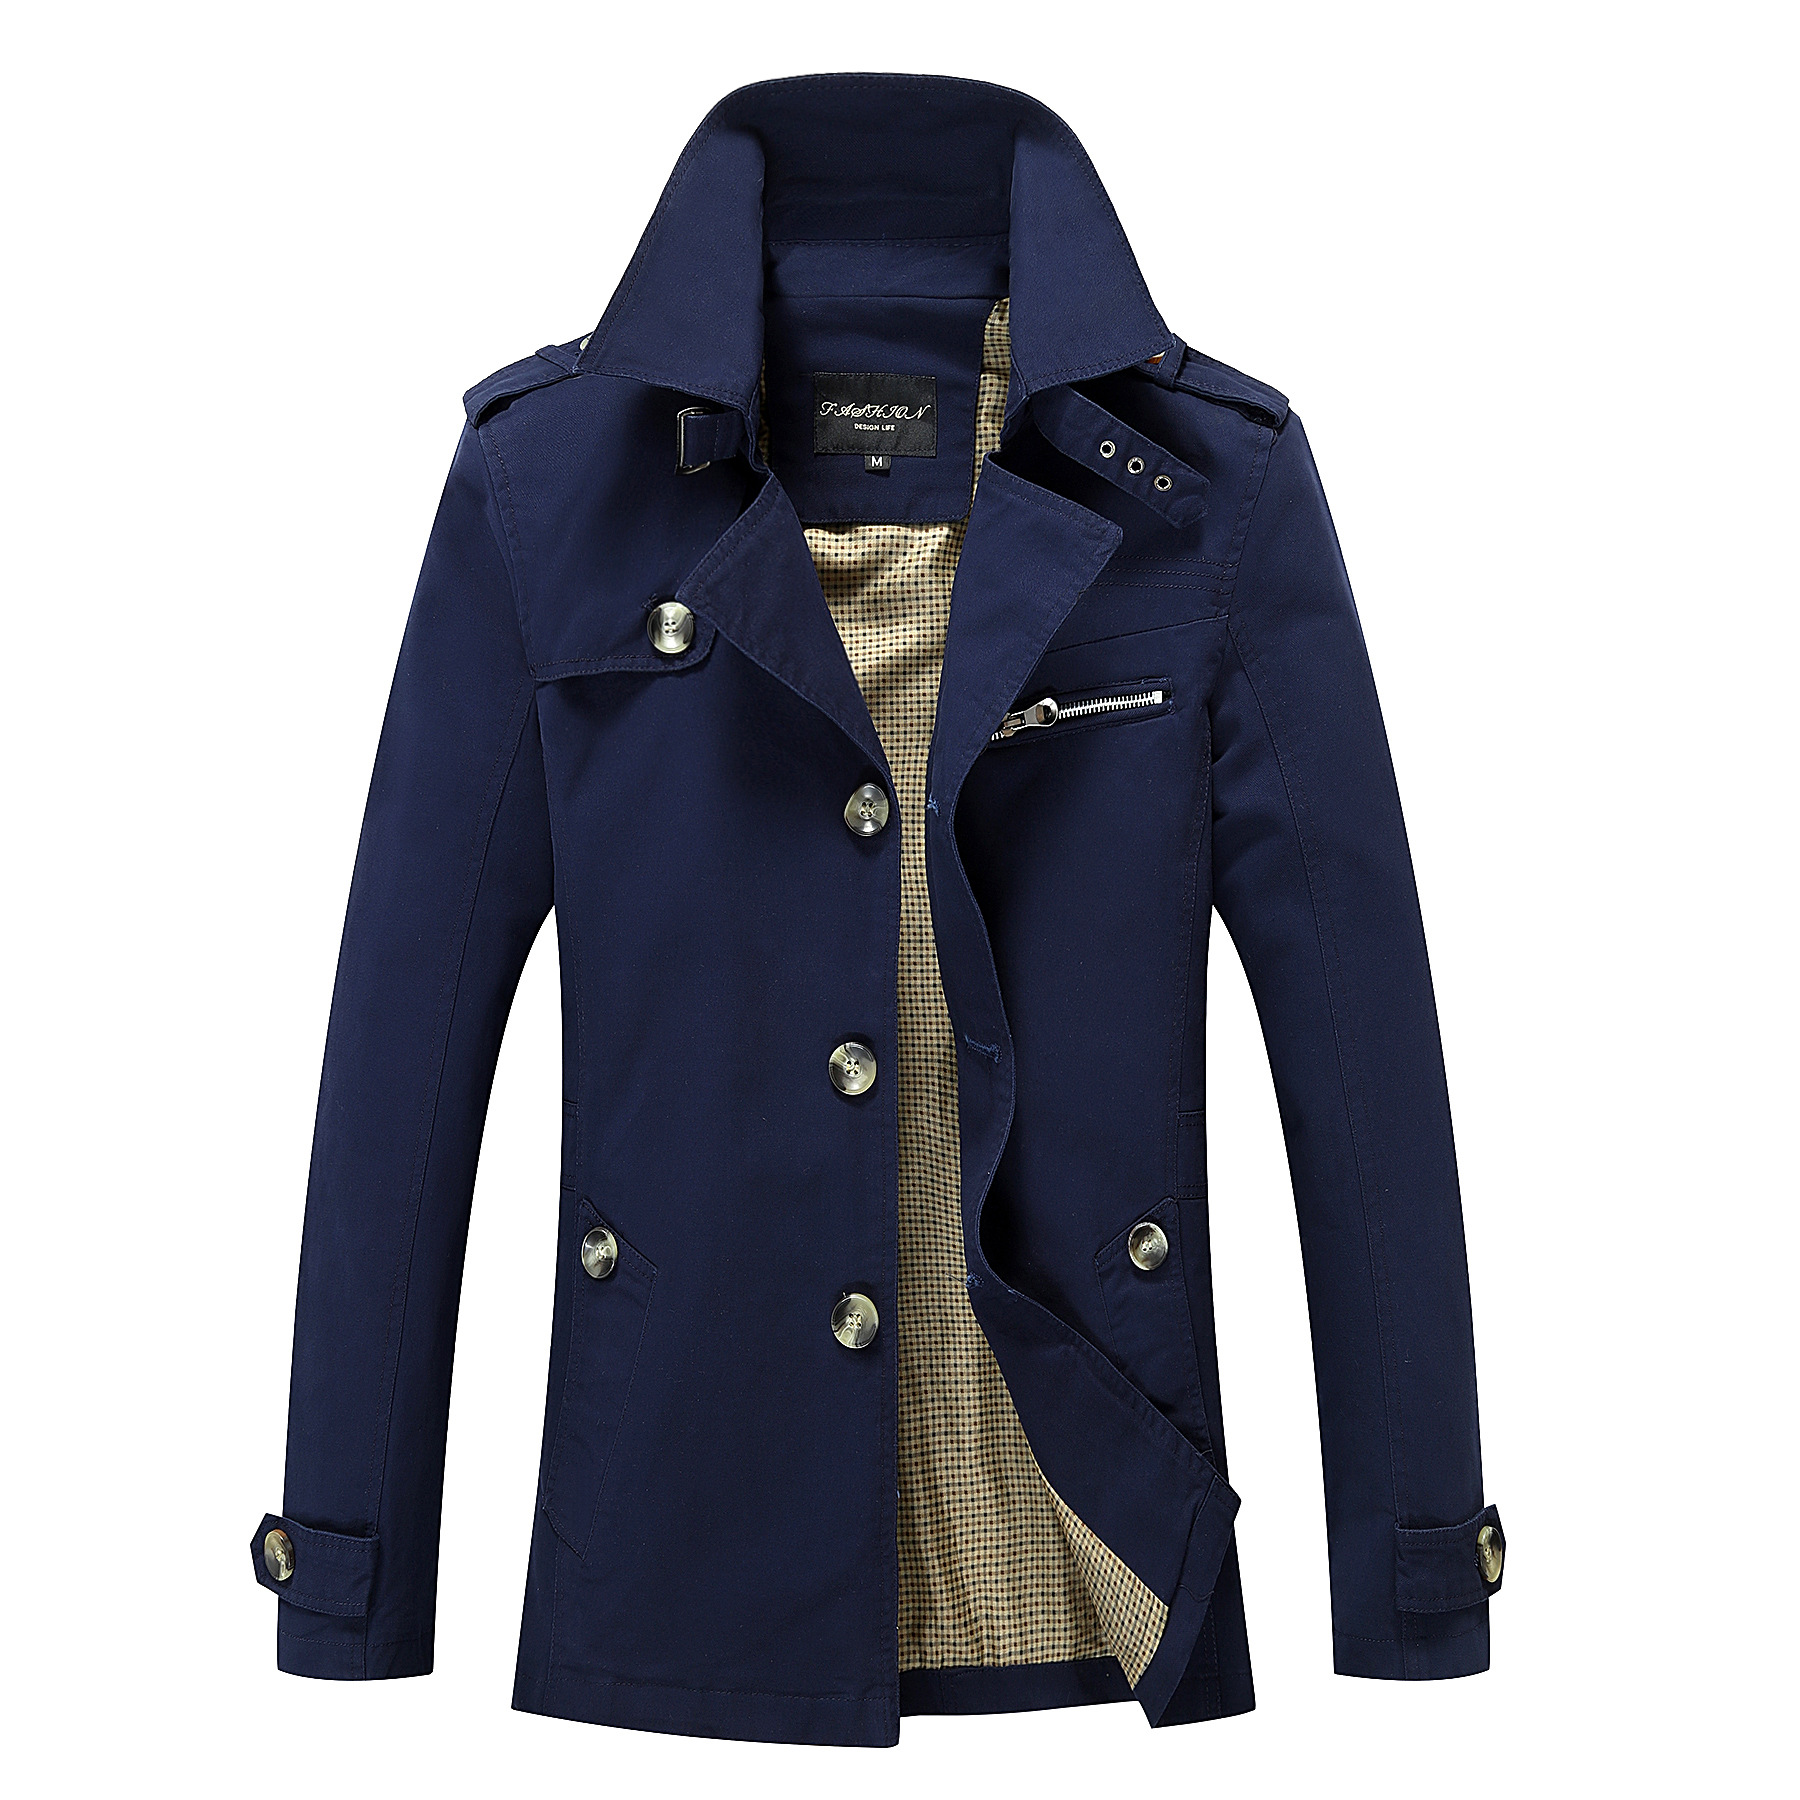 Spring Autumn Solid Casual Men Jackets Coat Long Sleeve Turn Down Collar Trenchcoat Plus Size M-5XL Slim Trench Men's Jacket